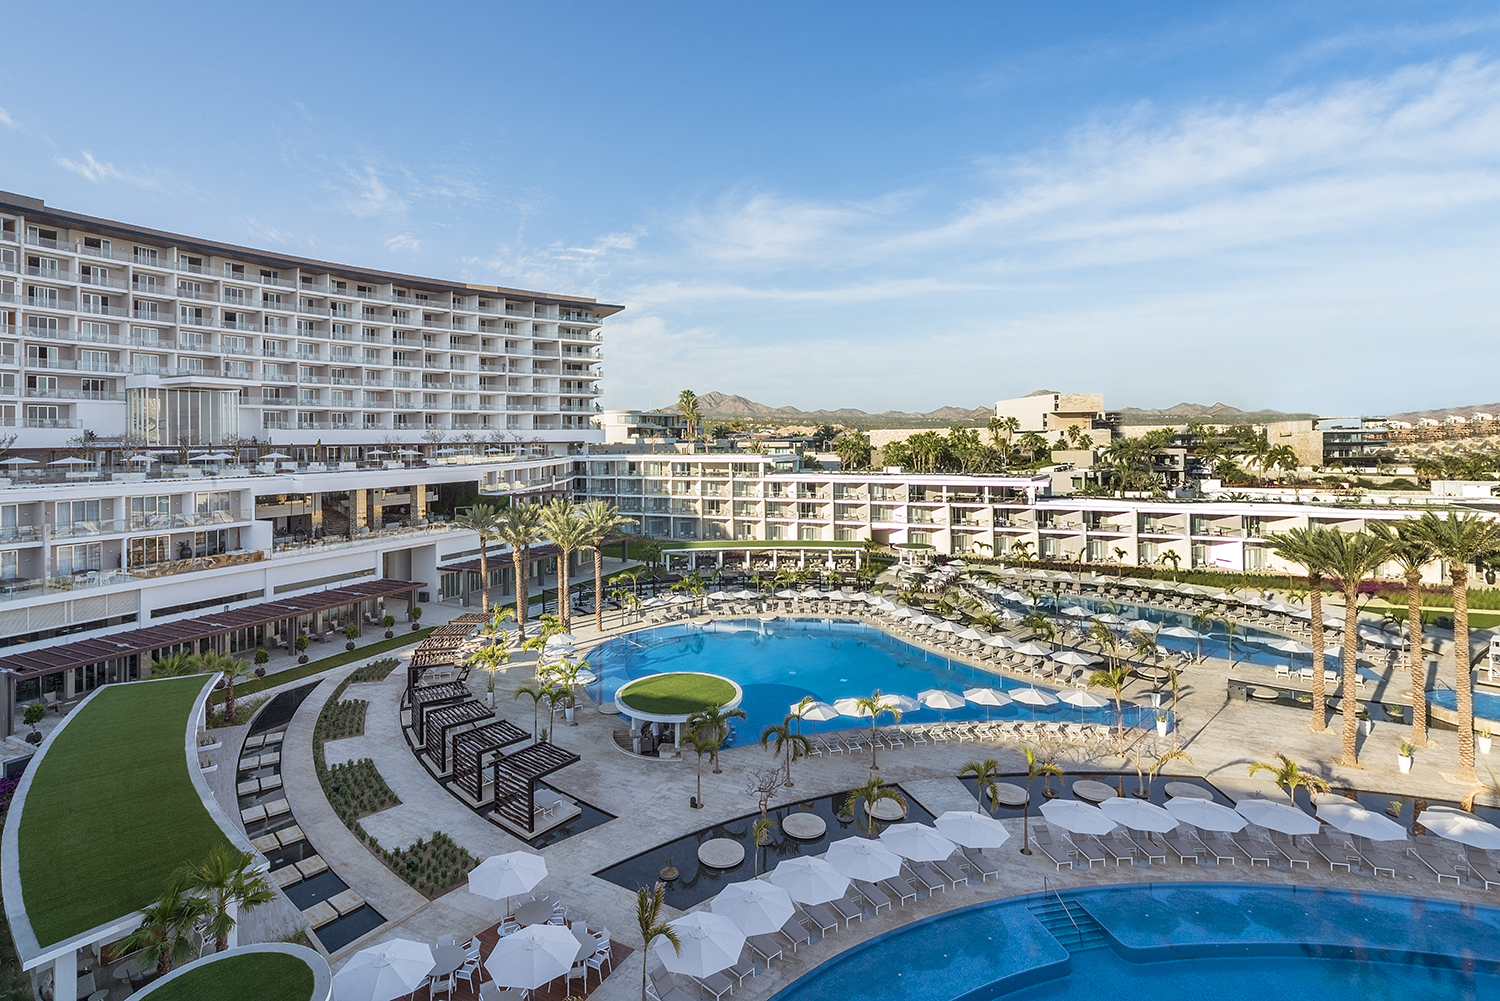 The newly opened Le Blanc Spa Resort Los Cabos.